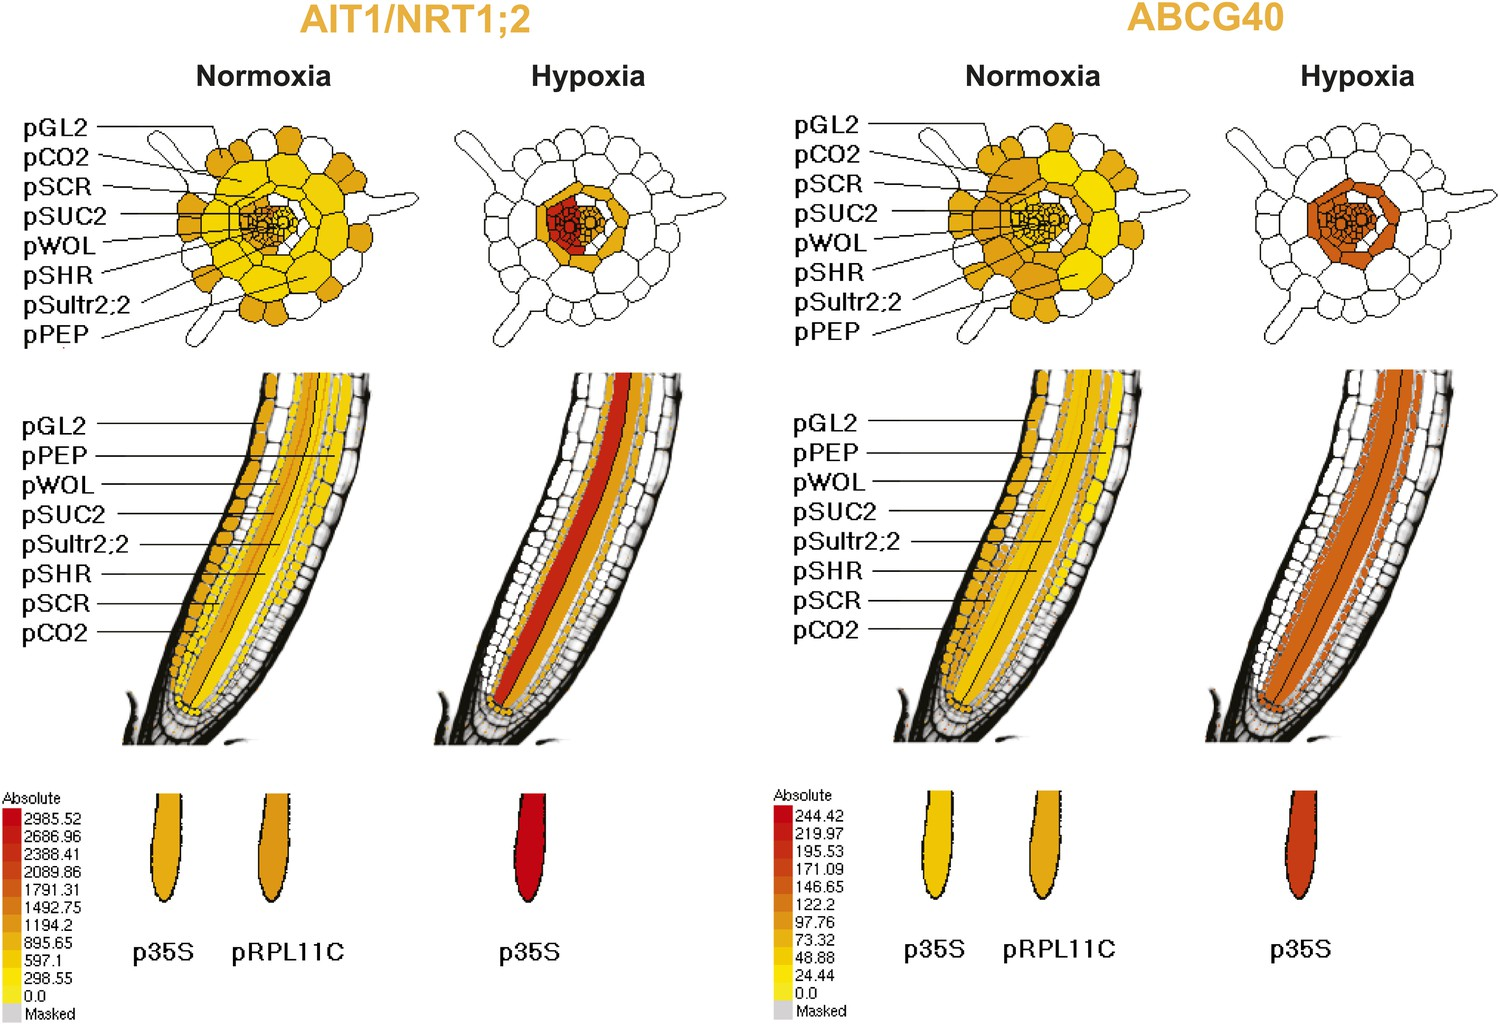 Abscisic Acid Dynamics In Roots Detected With Genetically Encoded Database Security Alfred Basta Pdf Pattern Of Ribosome Associated Transcripts For Ait1 And Abcg40 Transporter Genes